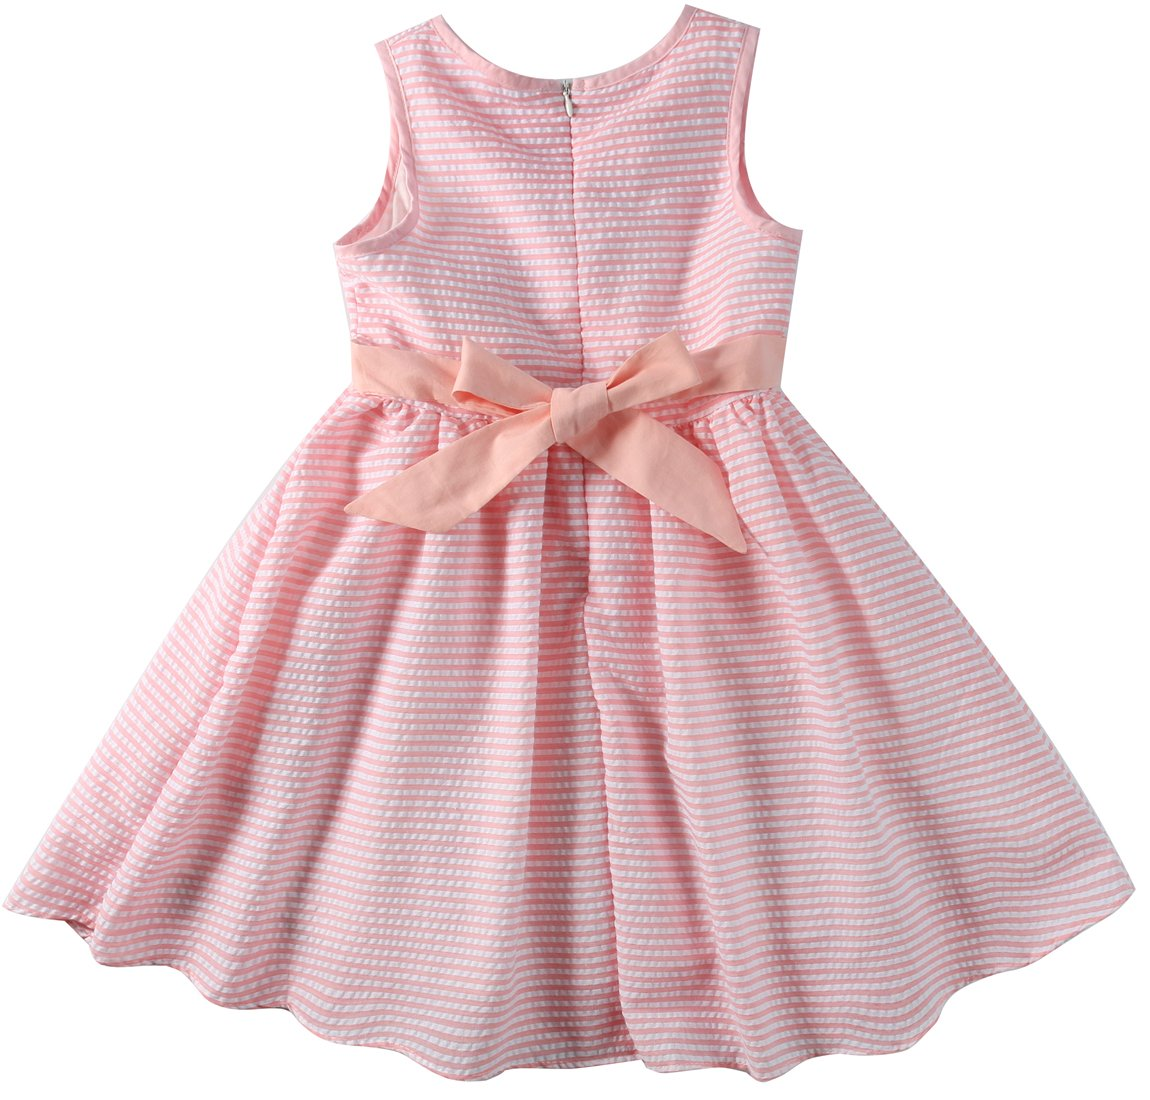 Sharequeen Striped Cotton Big Girls Summer Dress Dog Bird Cat Embroidery Pink Color A090(Pink Stripe, 6 Years) by Sharequeen (Image #2)